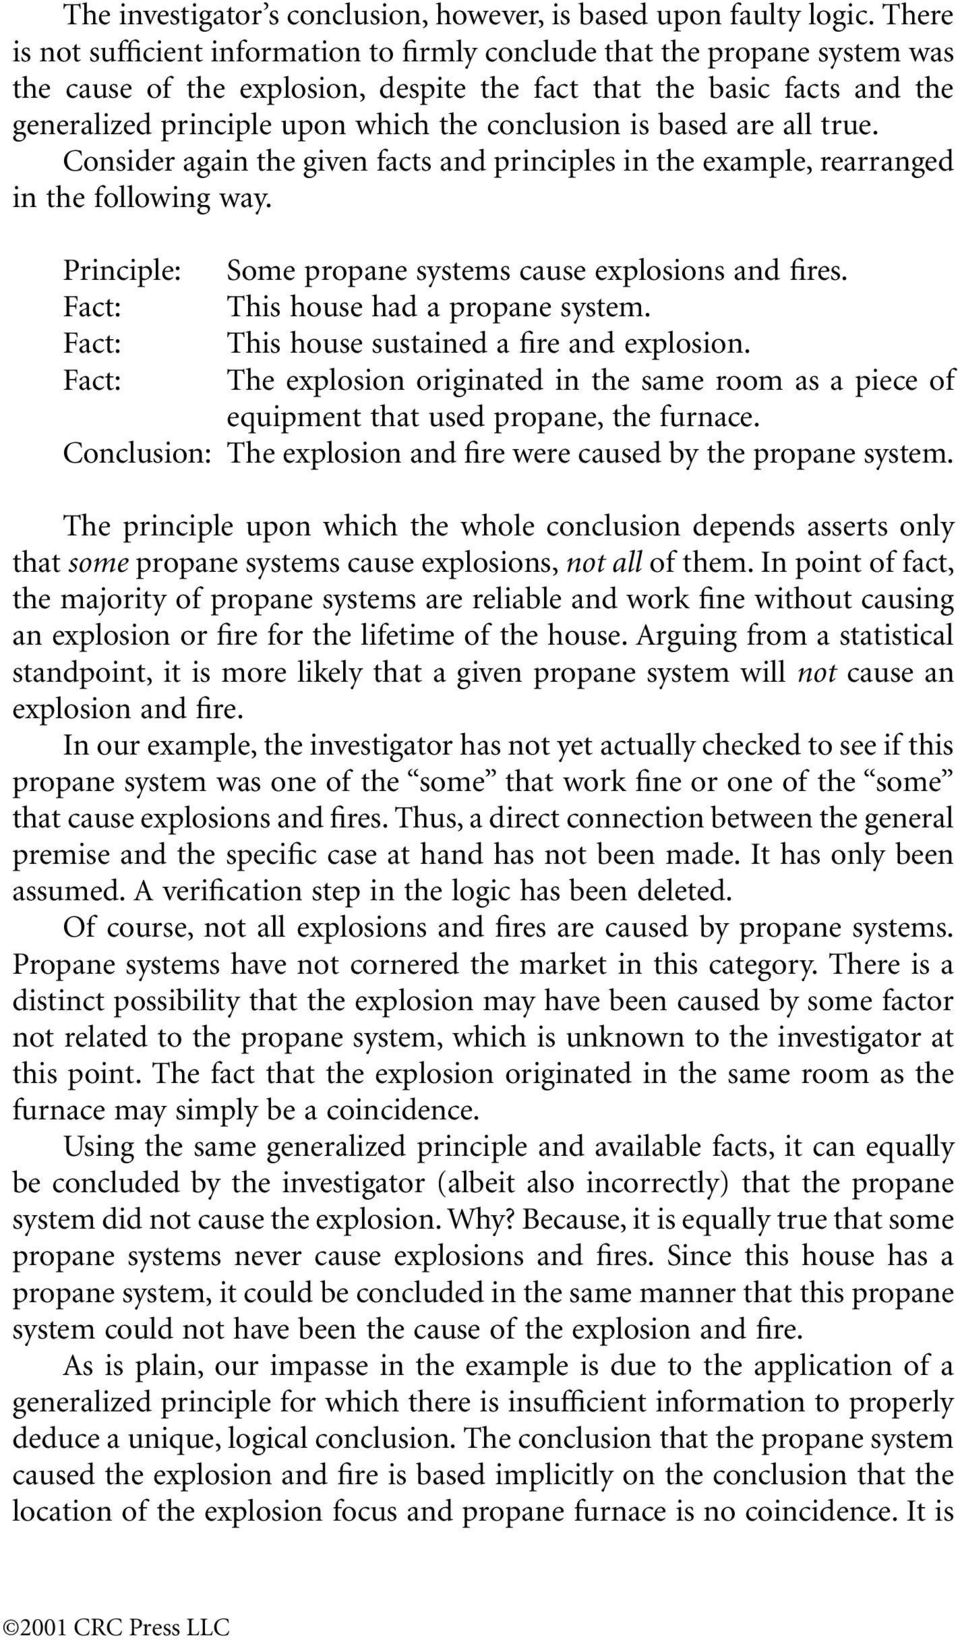 conclusion is based are all true. Consider again the given facts and principles in the example, rearranged in the following way. Principle: Some propane systems cause explosions and fires.